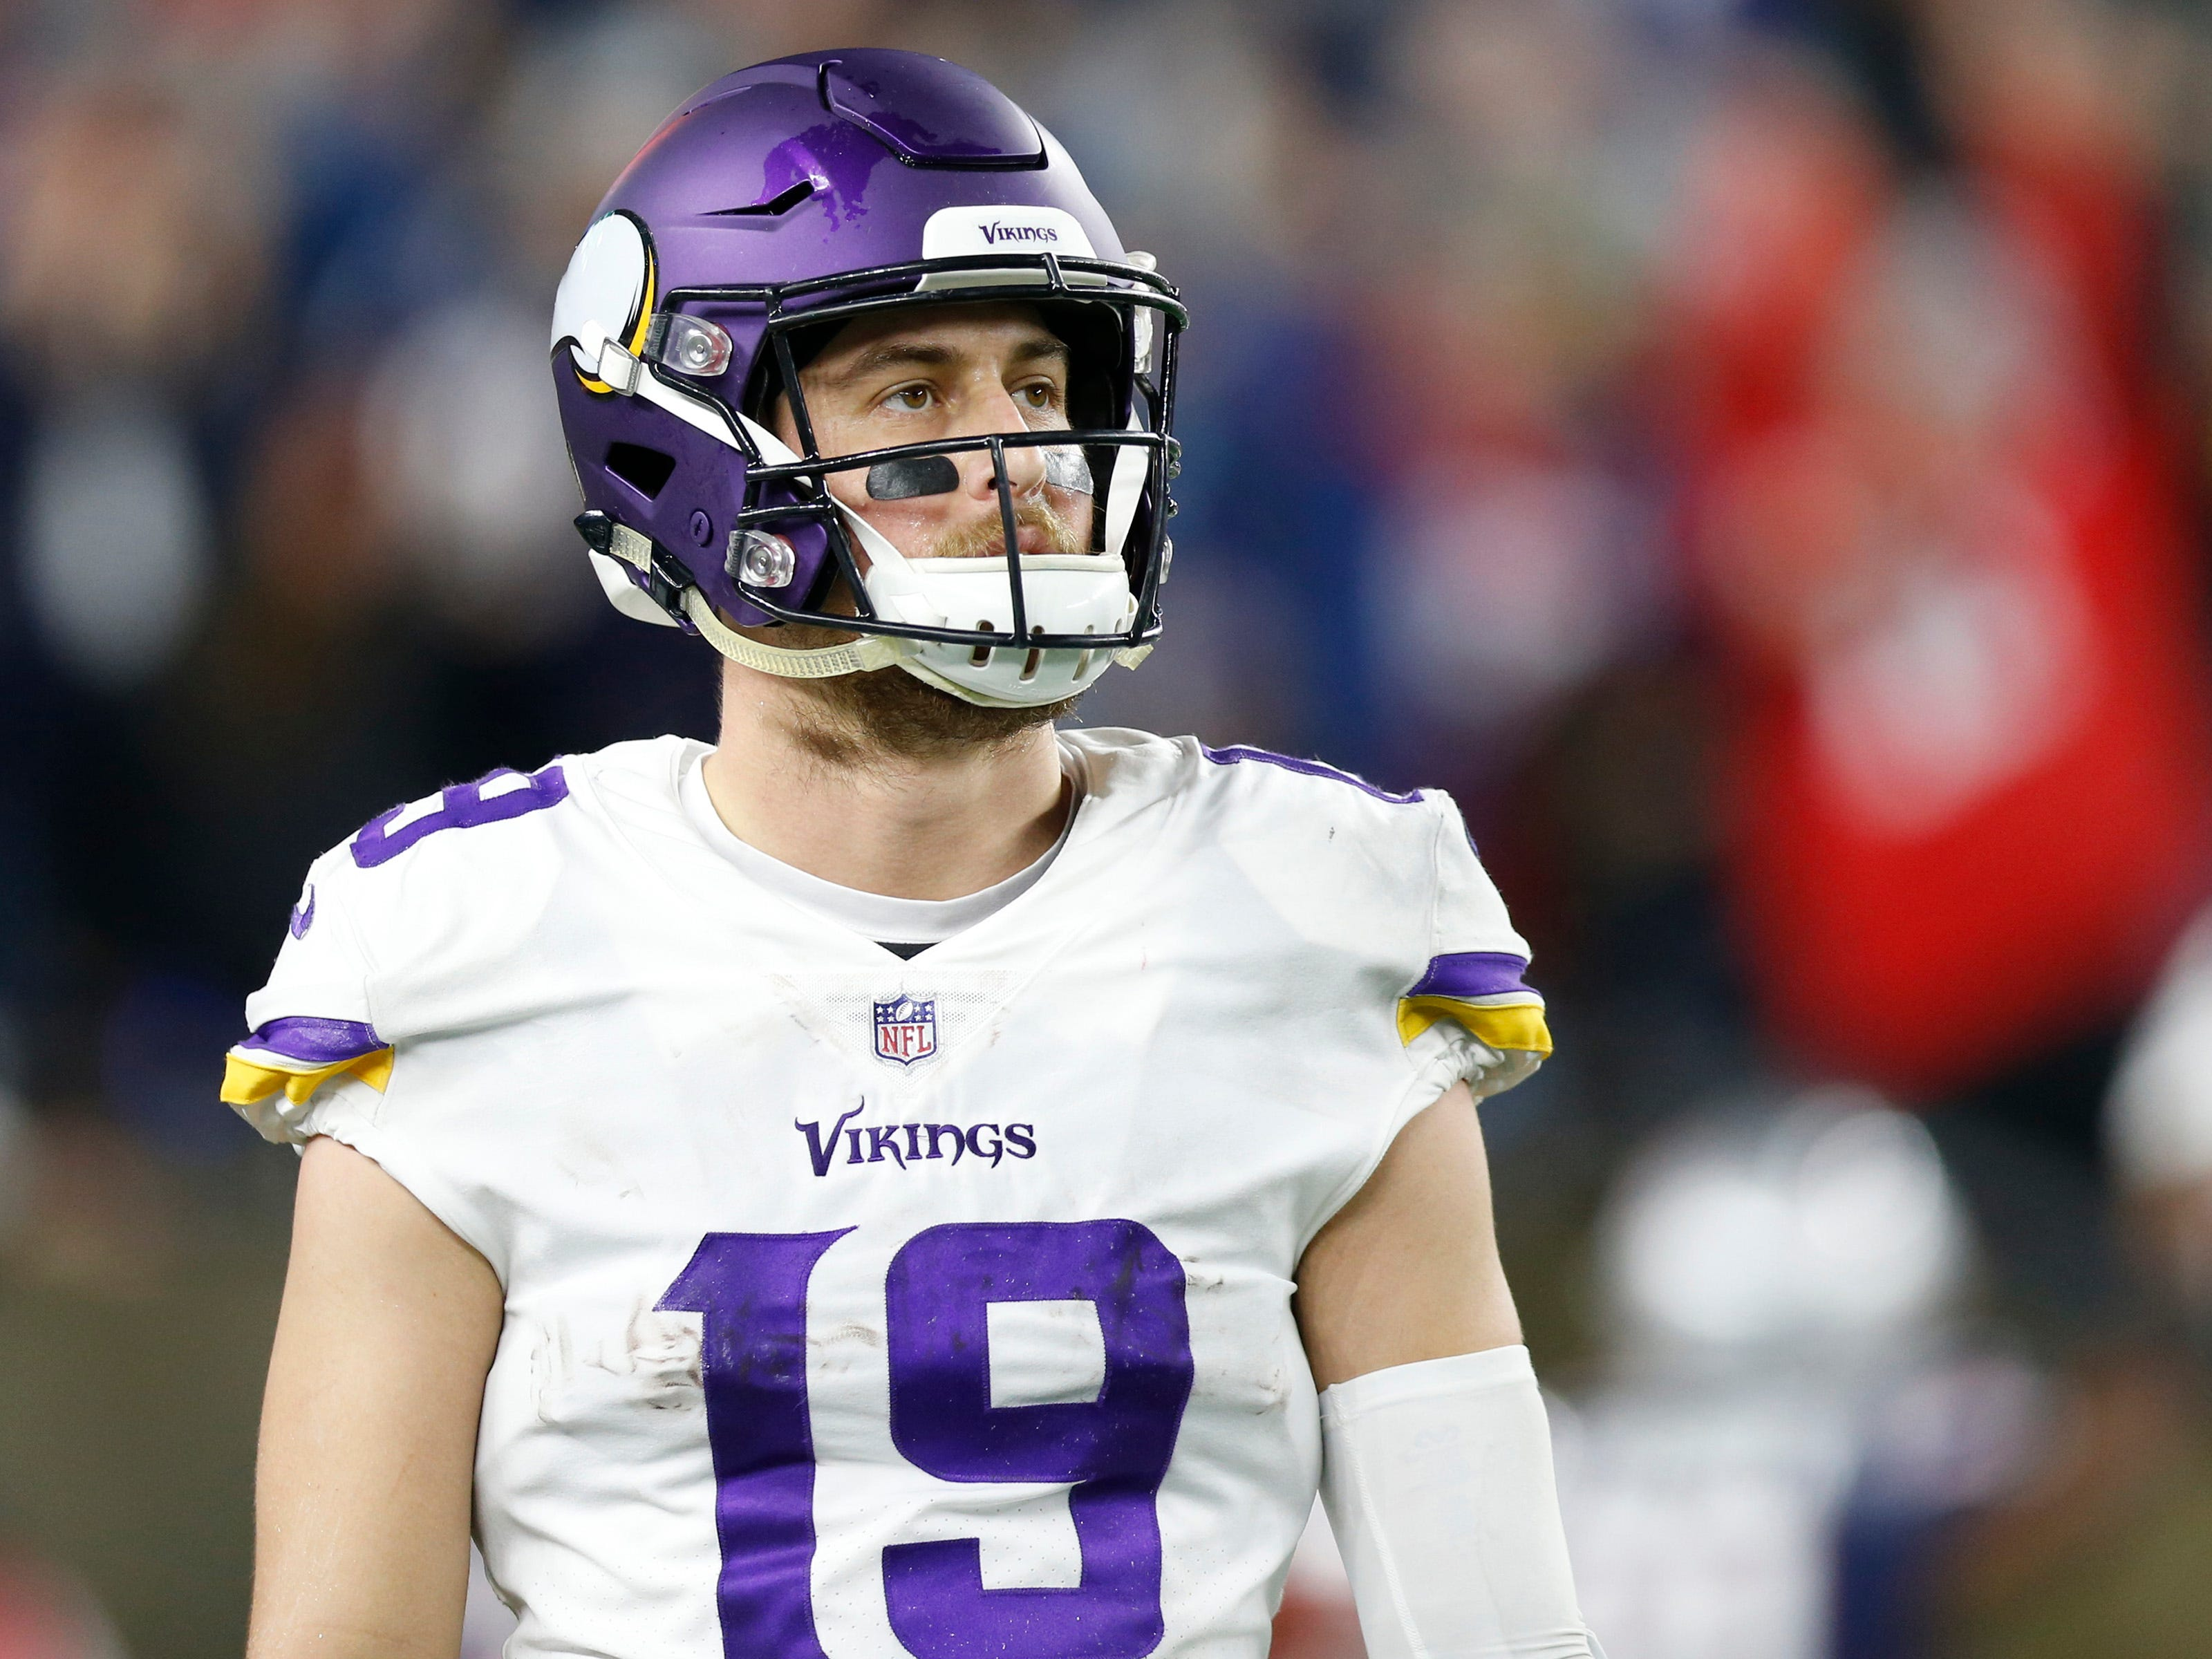 12. Vikings (9): They can't get going on ground. Defense isn't nearly as effective as 2017. And they're only ½-game better than Case Keenum's Broncos.